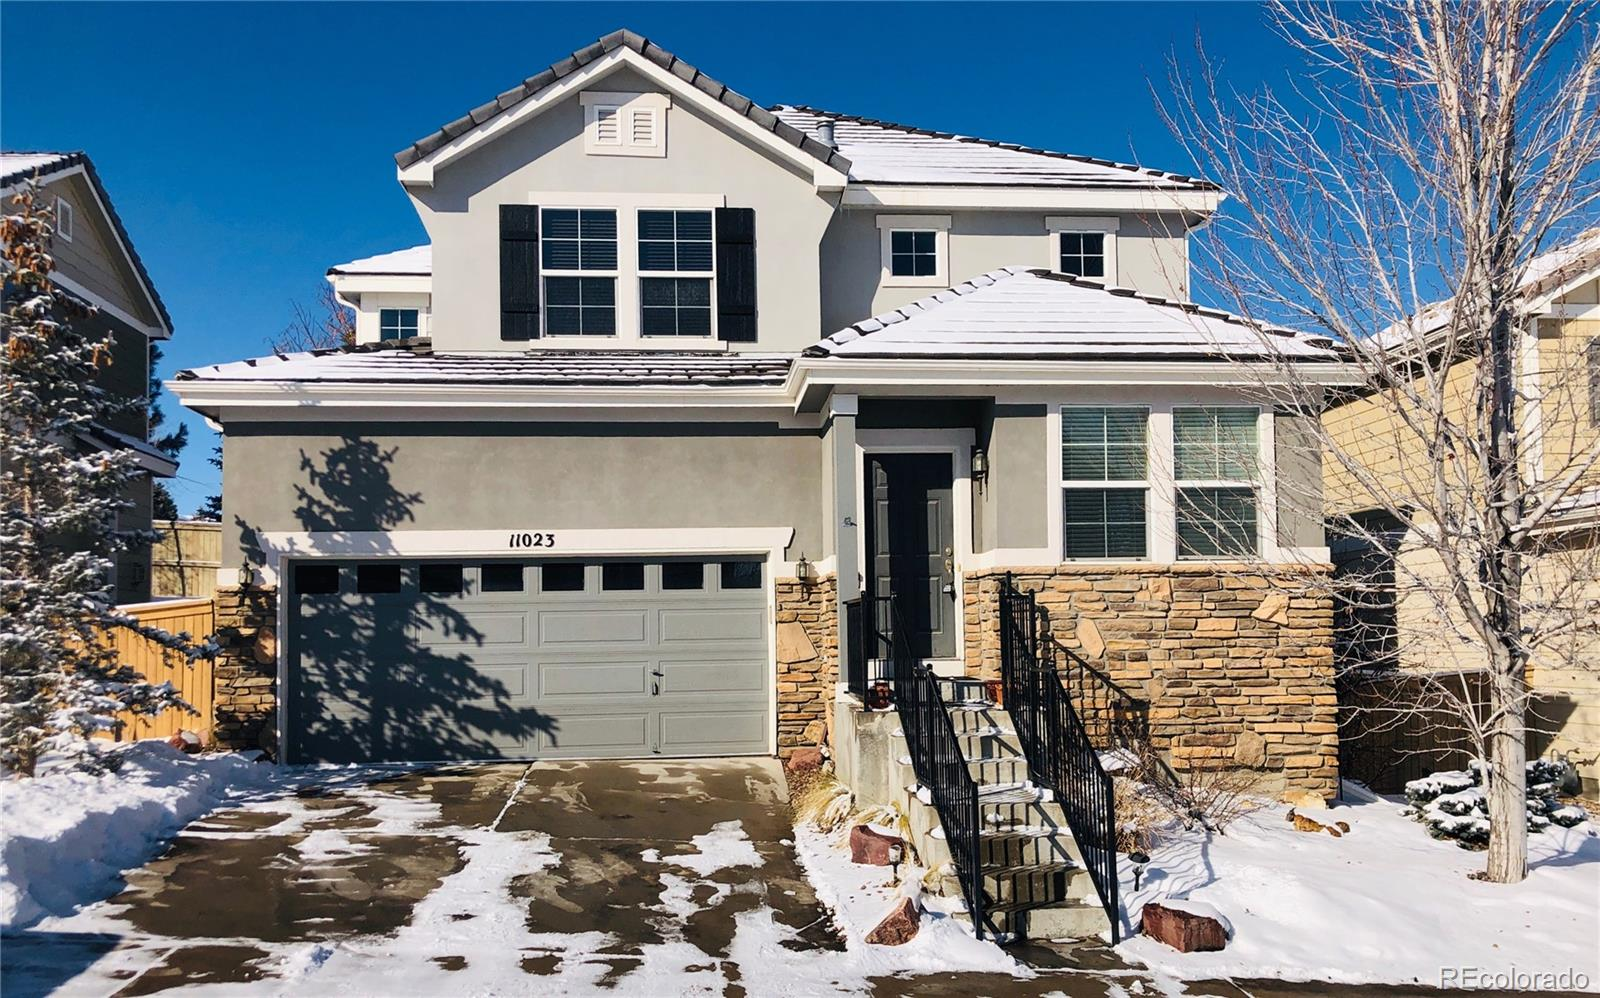 MLS# 9229409 - 1 - 11023 Meadowvale Circle, Highlands Ranch, CO 80130